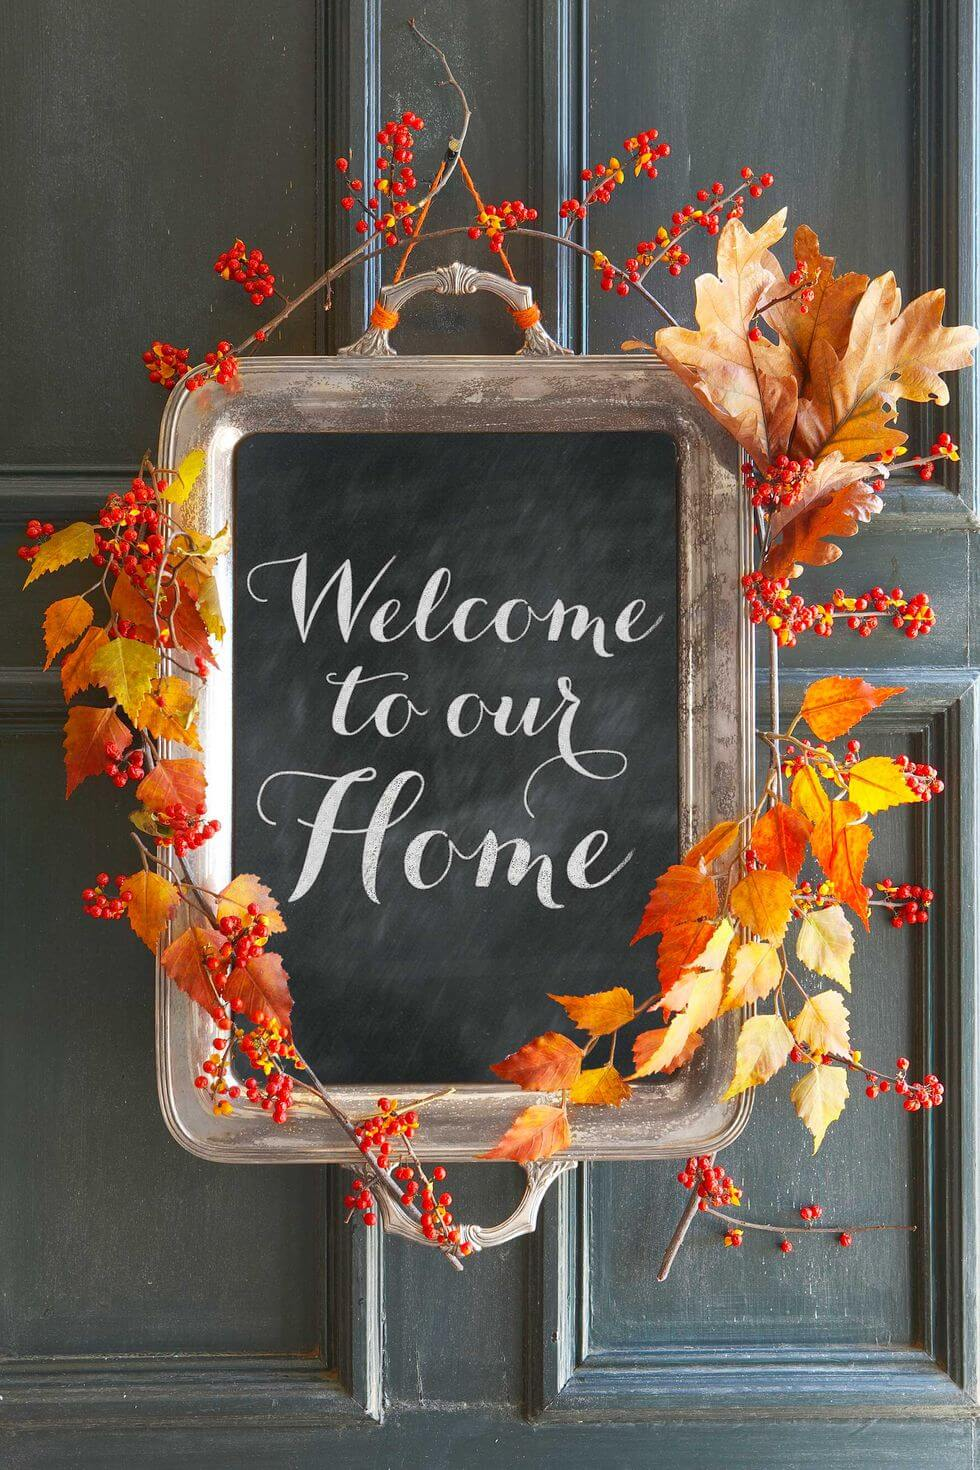 More DIY arts and crafts for fall